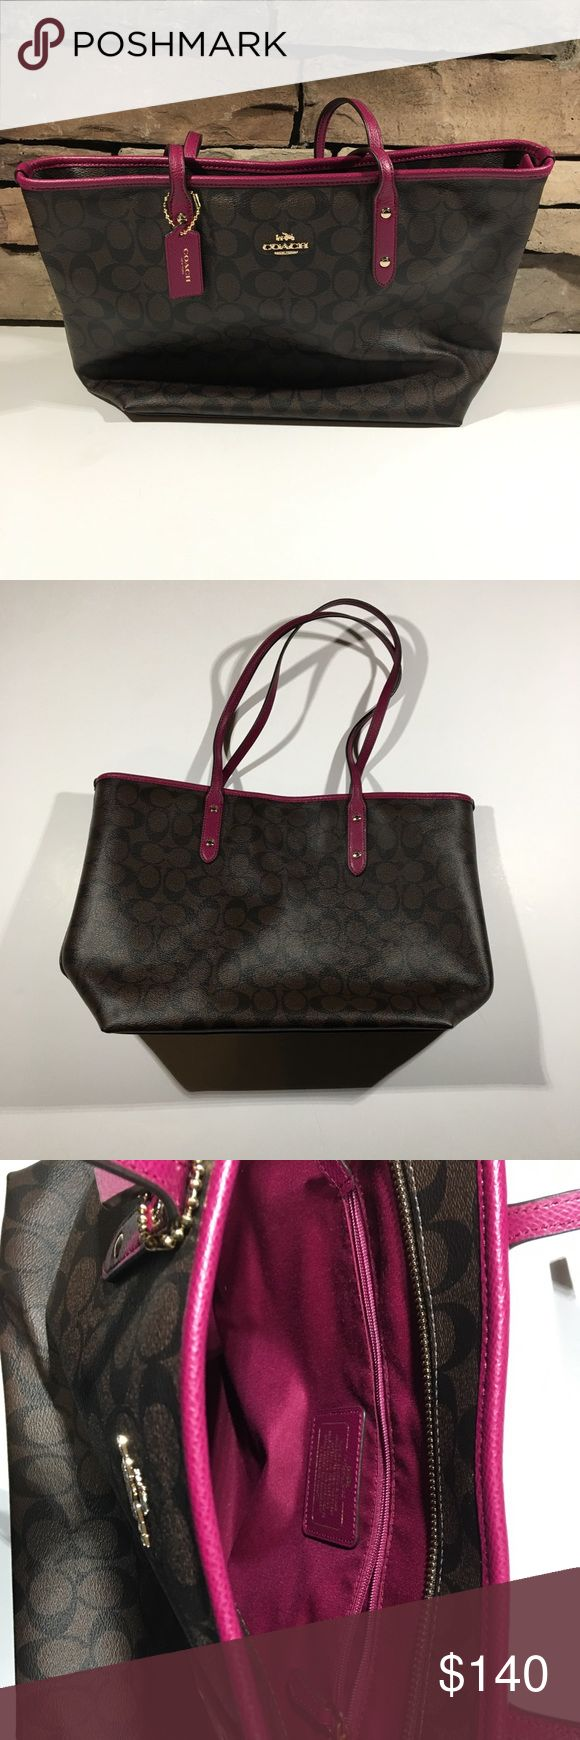 Coach Signature City Zip Tote Brown Fuchsia Never been carried. Bought by me personally and has just been sitting in my closet. Coach Bags Shoulder Bags